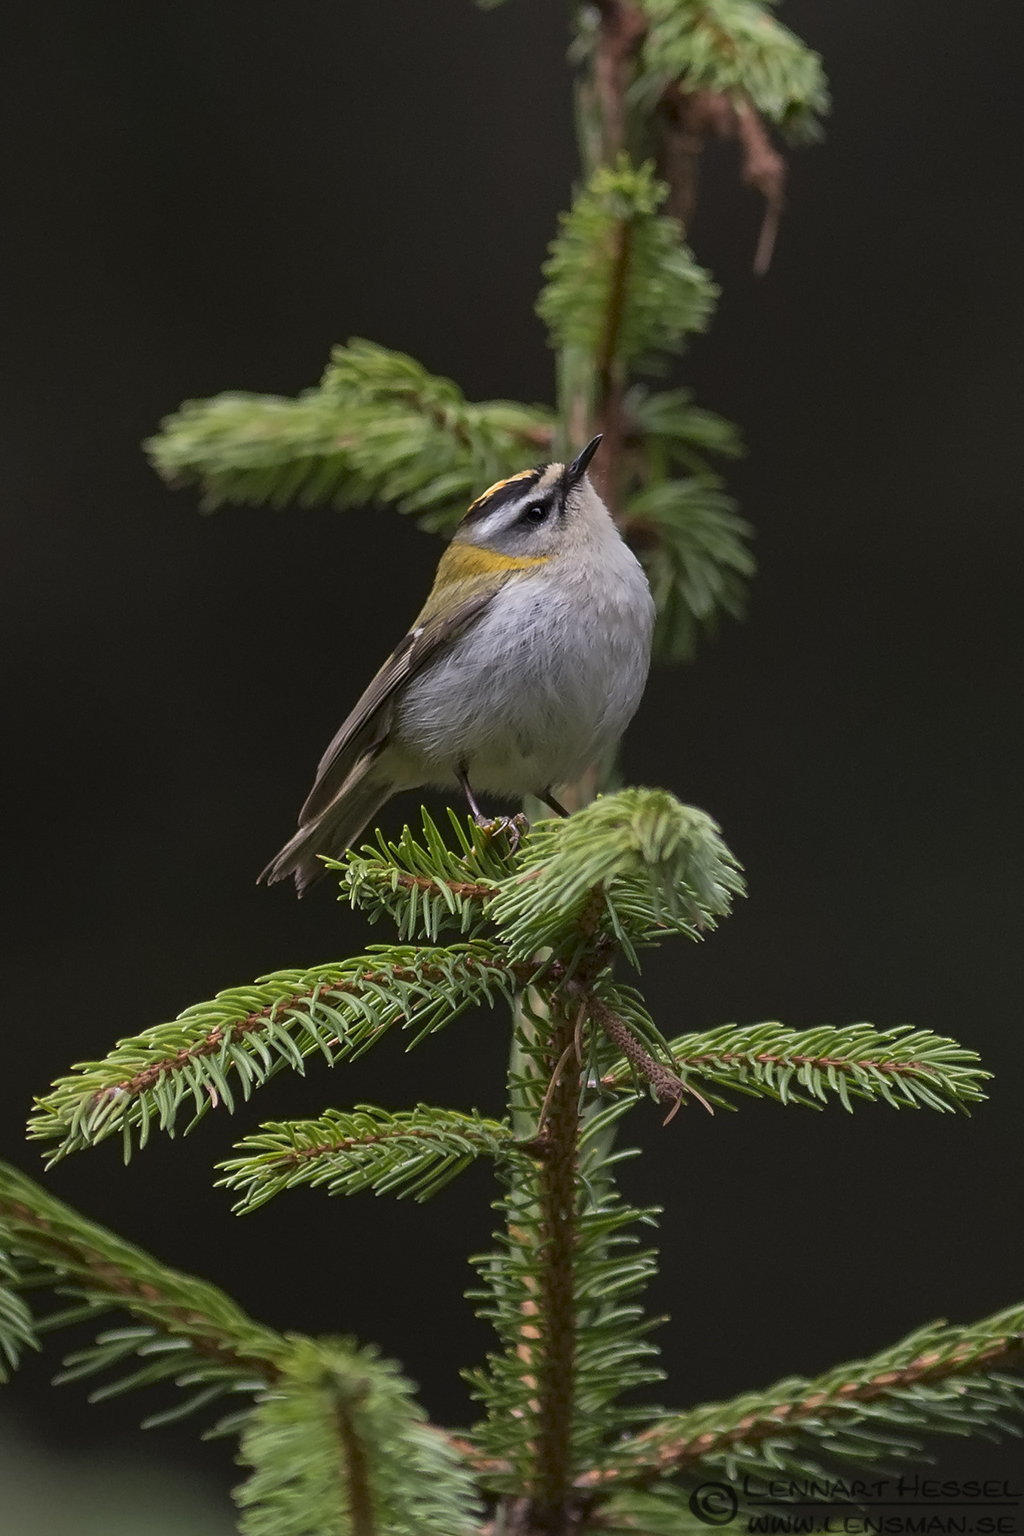 Firecrest in Romania